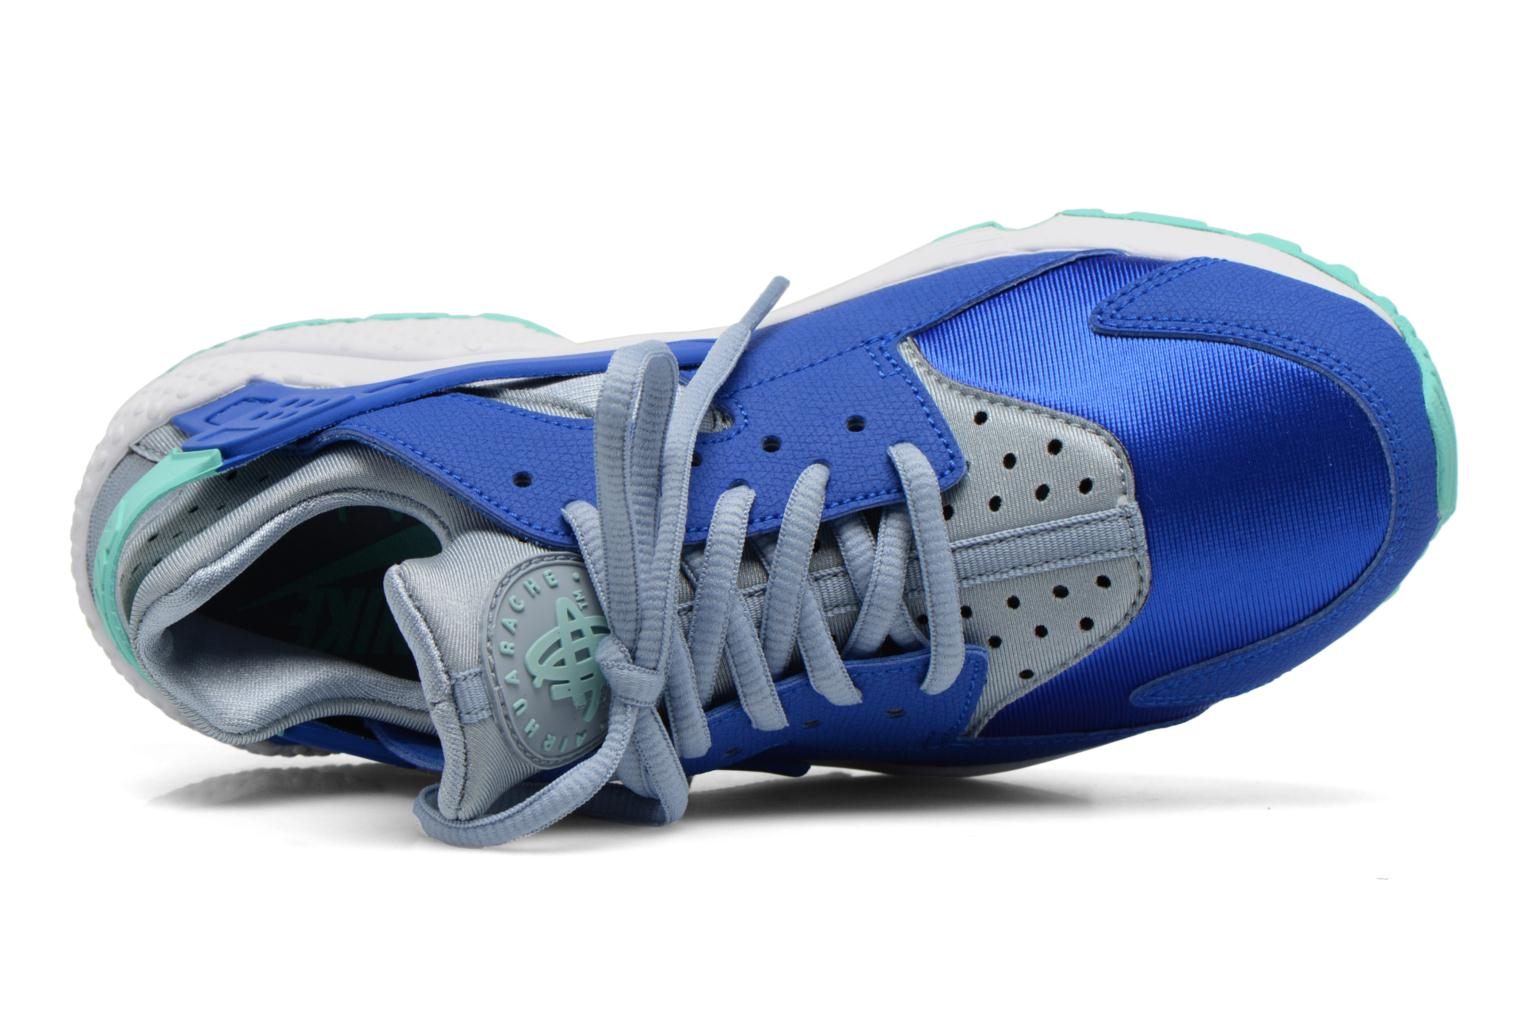 Wmns Air Huarache Run Racer Blue/Blue Grey-Hypr Turq